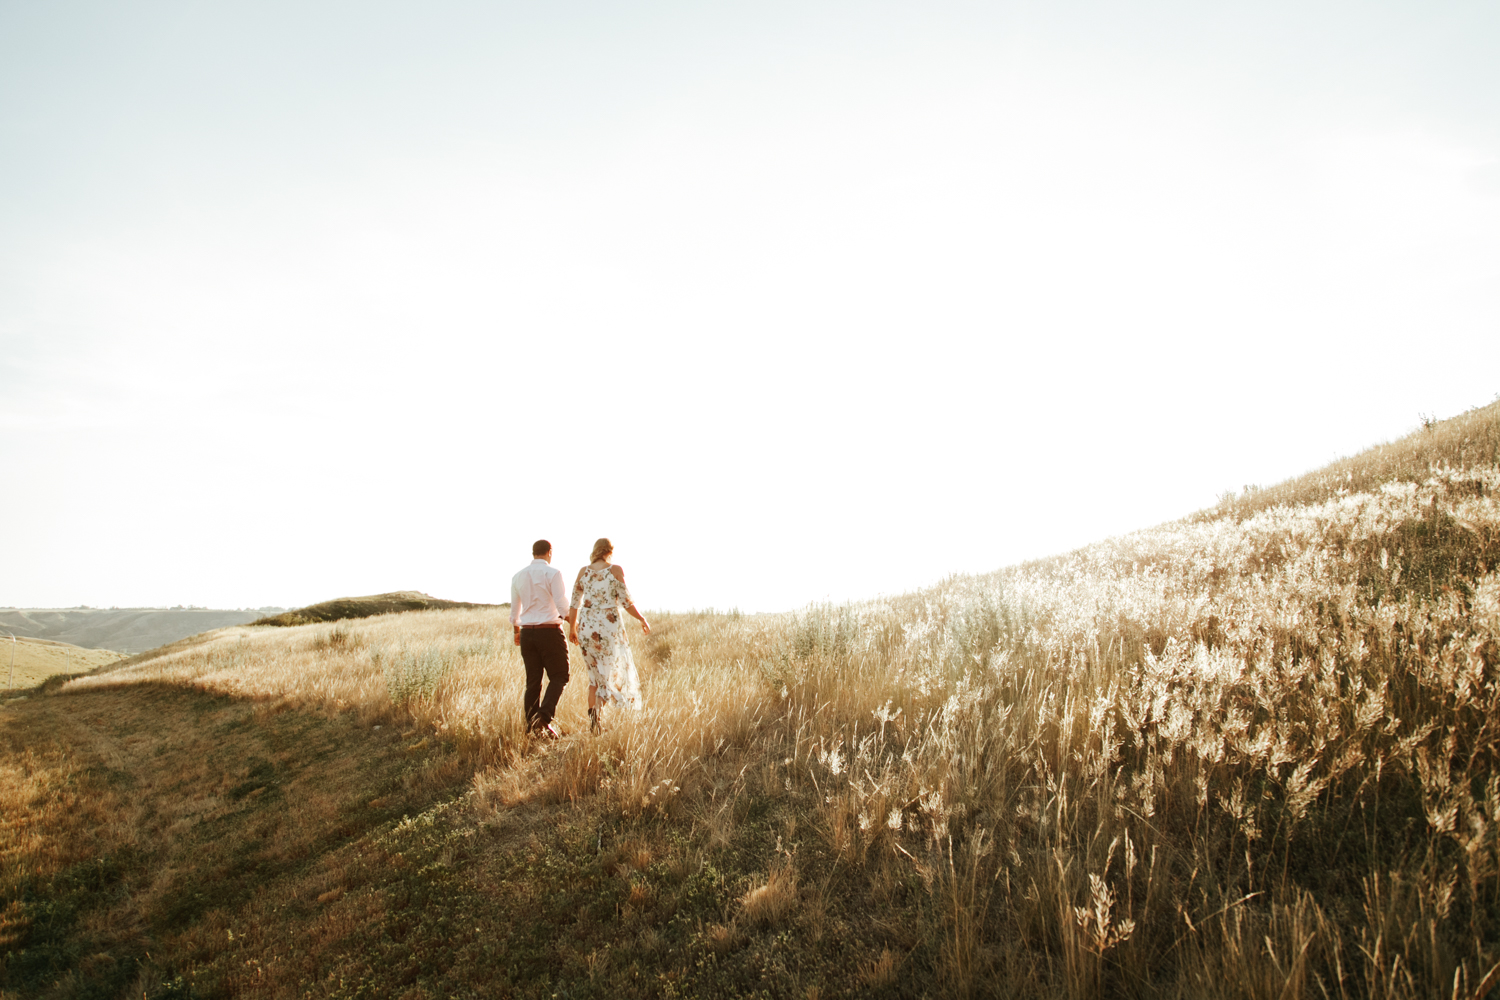 lethbridge-wedding-photographer-love-and-be-loved-photography-katie-kelli-engagement-picture-image-photo-1.jpg